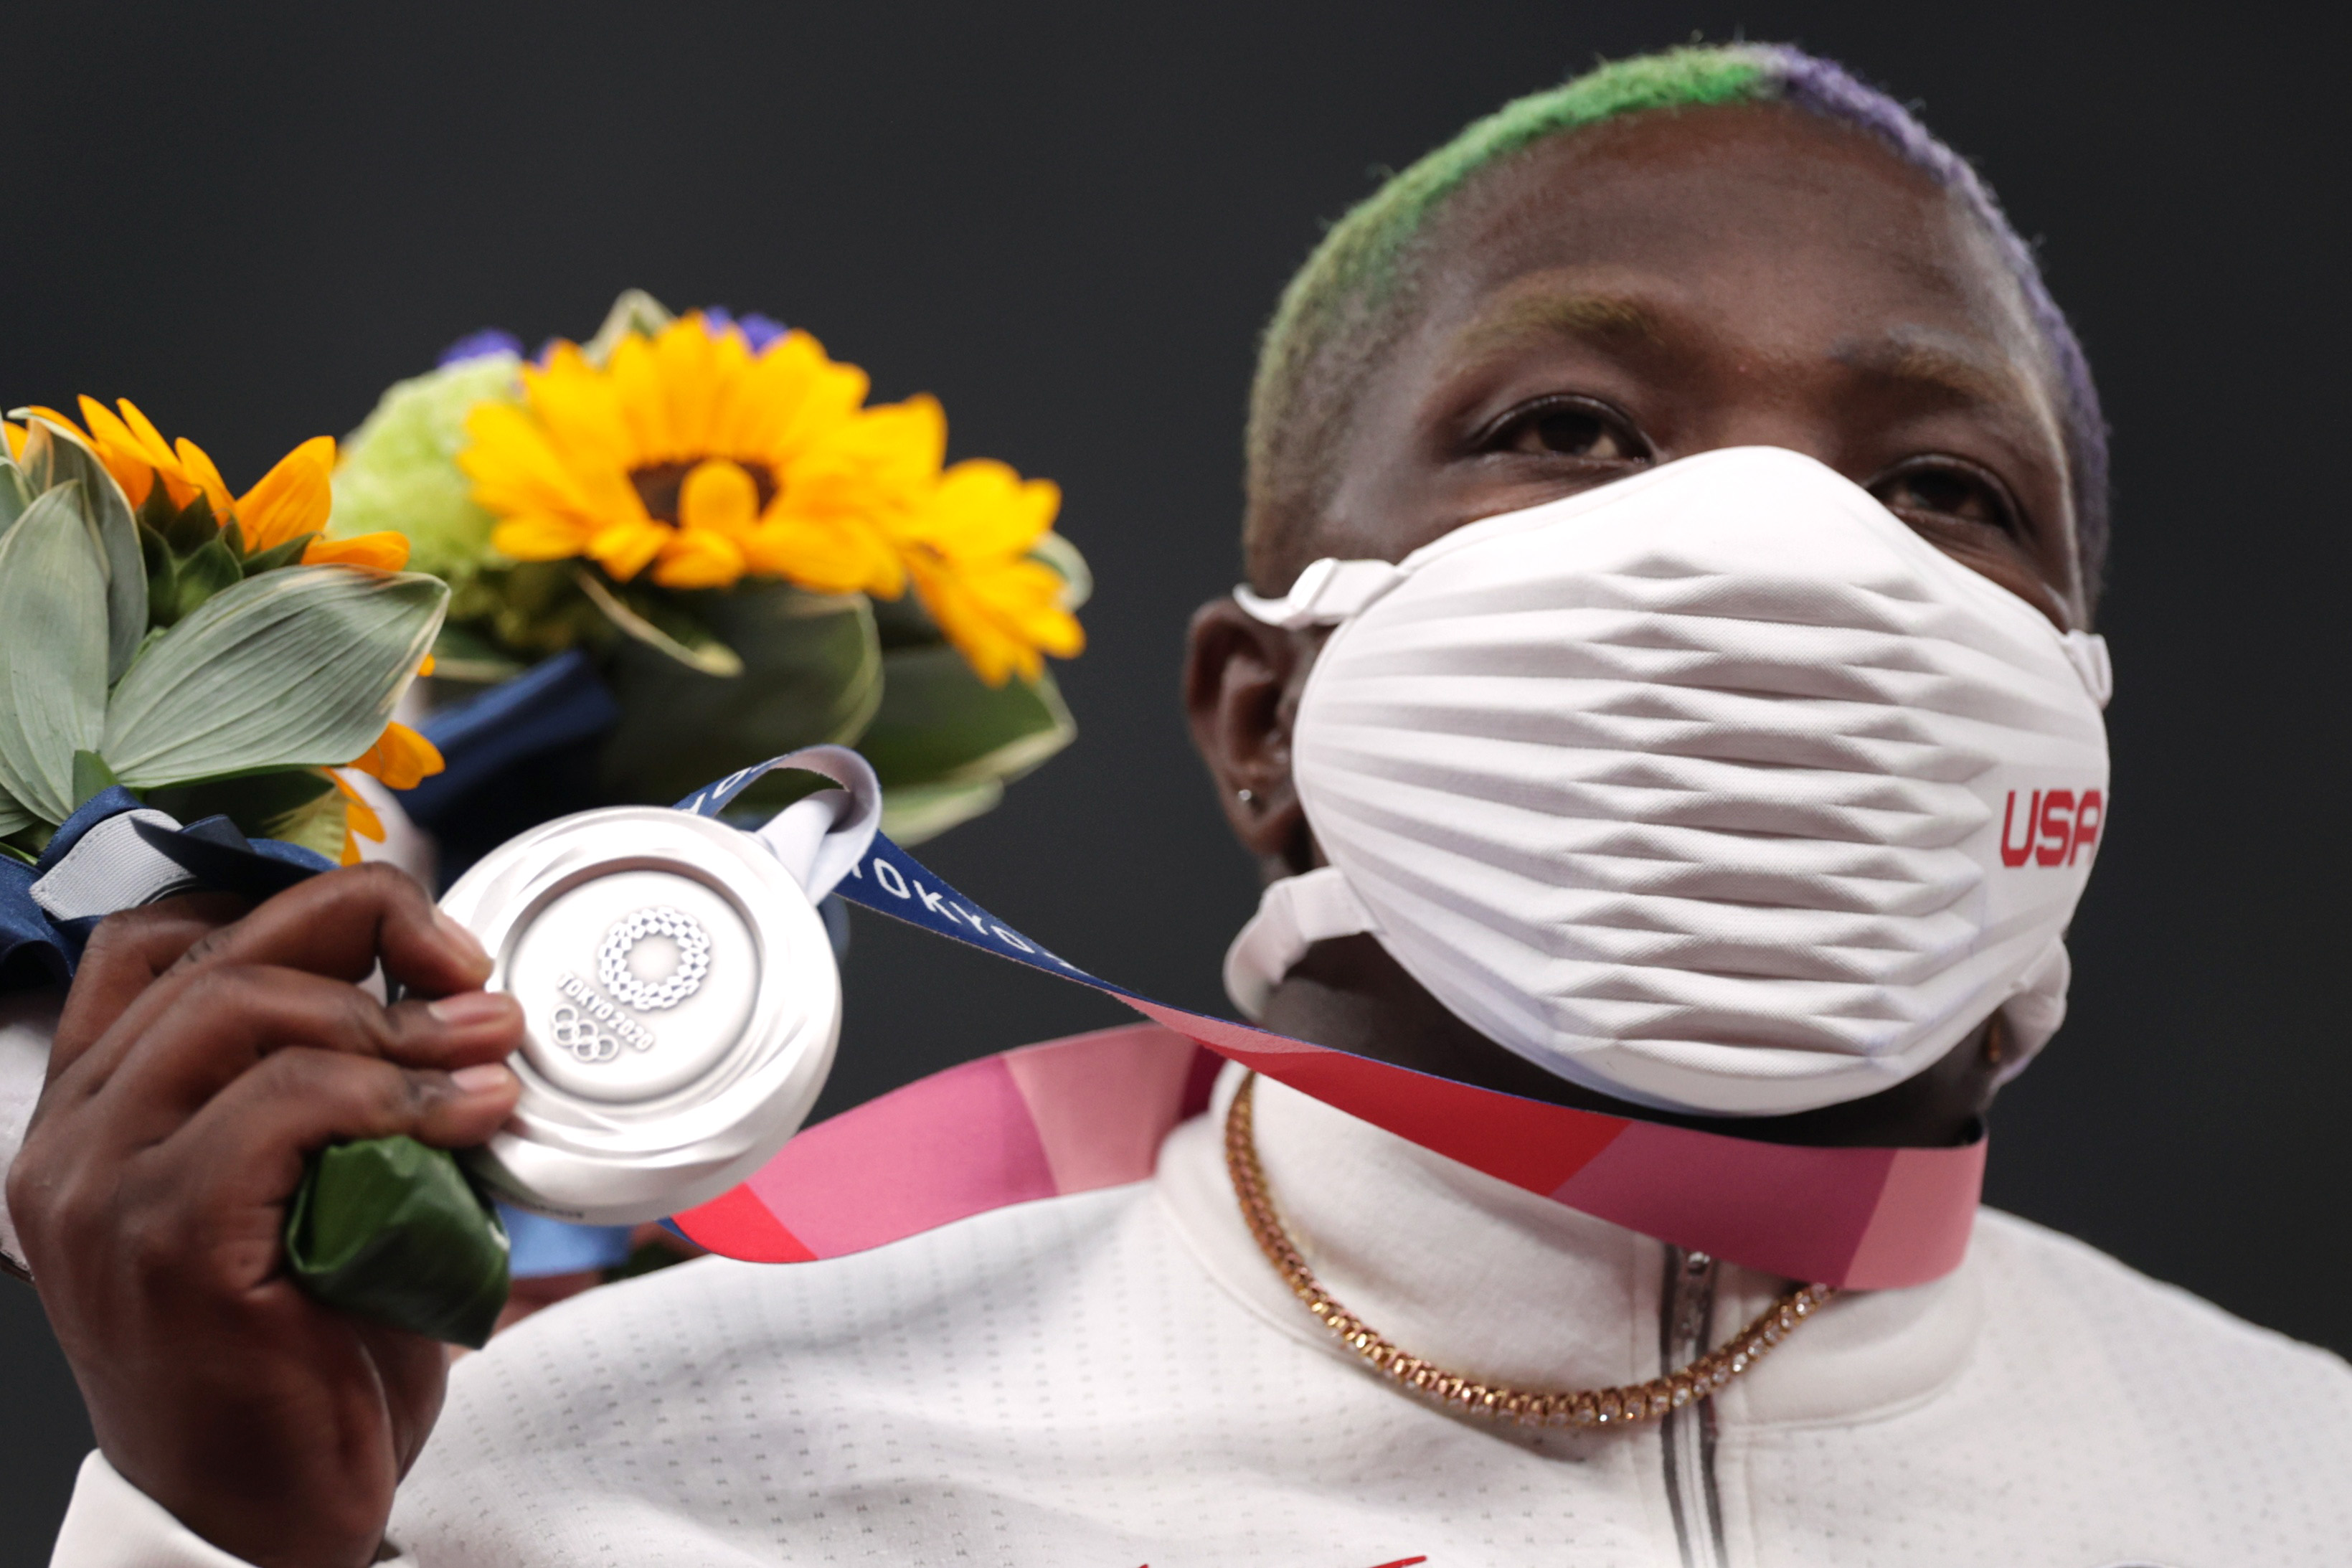 Tokyo 2020 Olympics - Athletics - Women's Shot Put - Medal Ceremony - Olympic Stadium, Tokyo, Japan – August 1, 2021. Silver medallist, Raven Saunders of the United States wearing a protective face mask poses on the podium REUTERS/Hannah Mckay